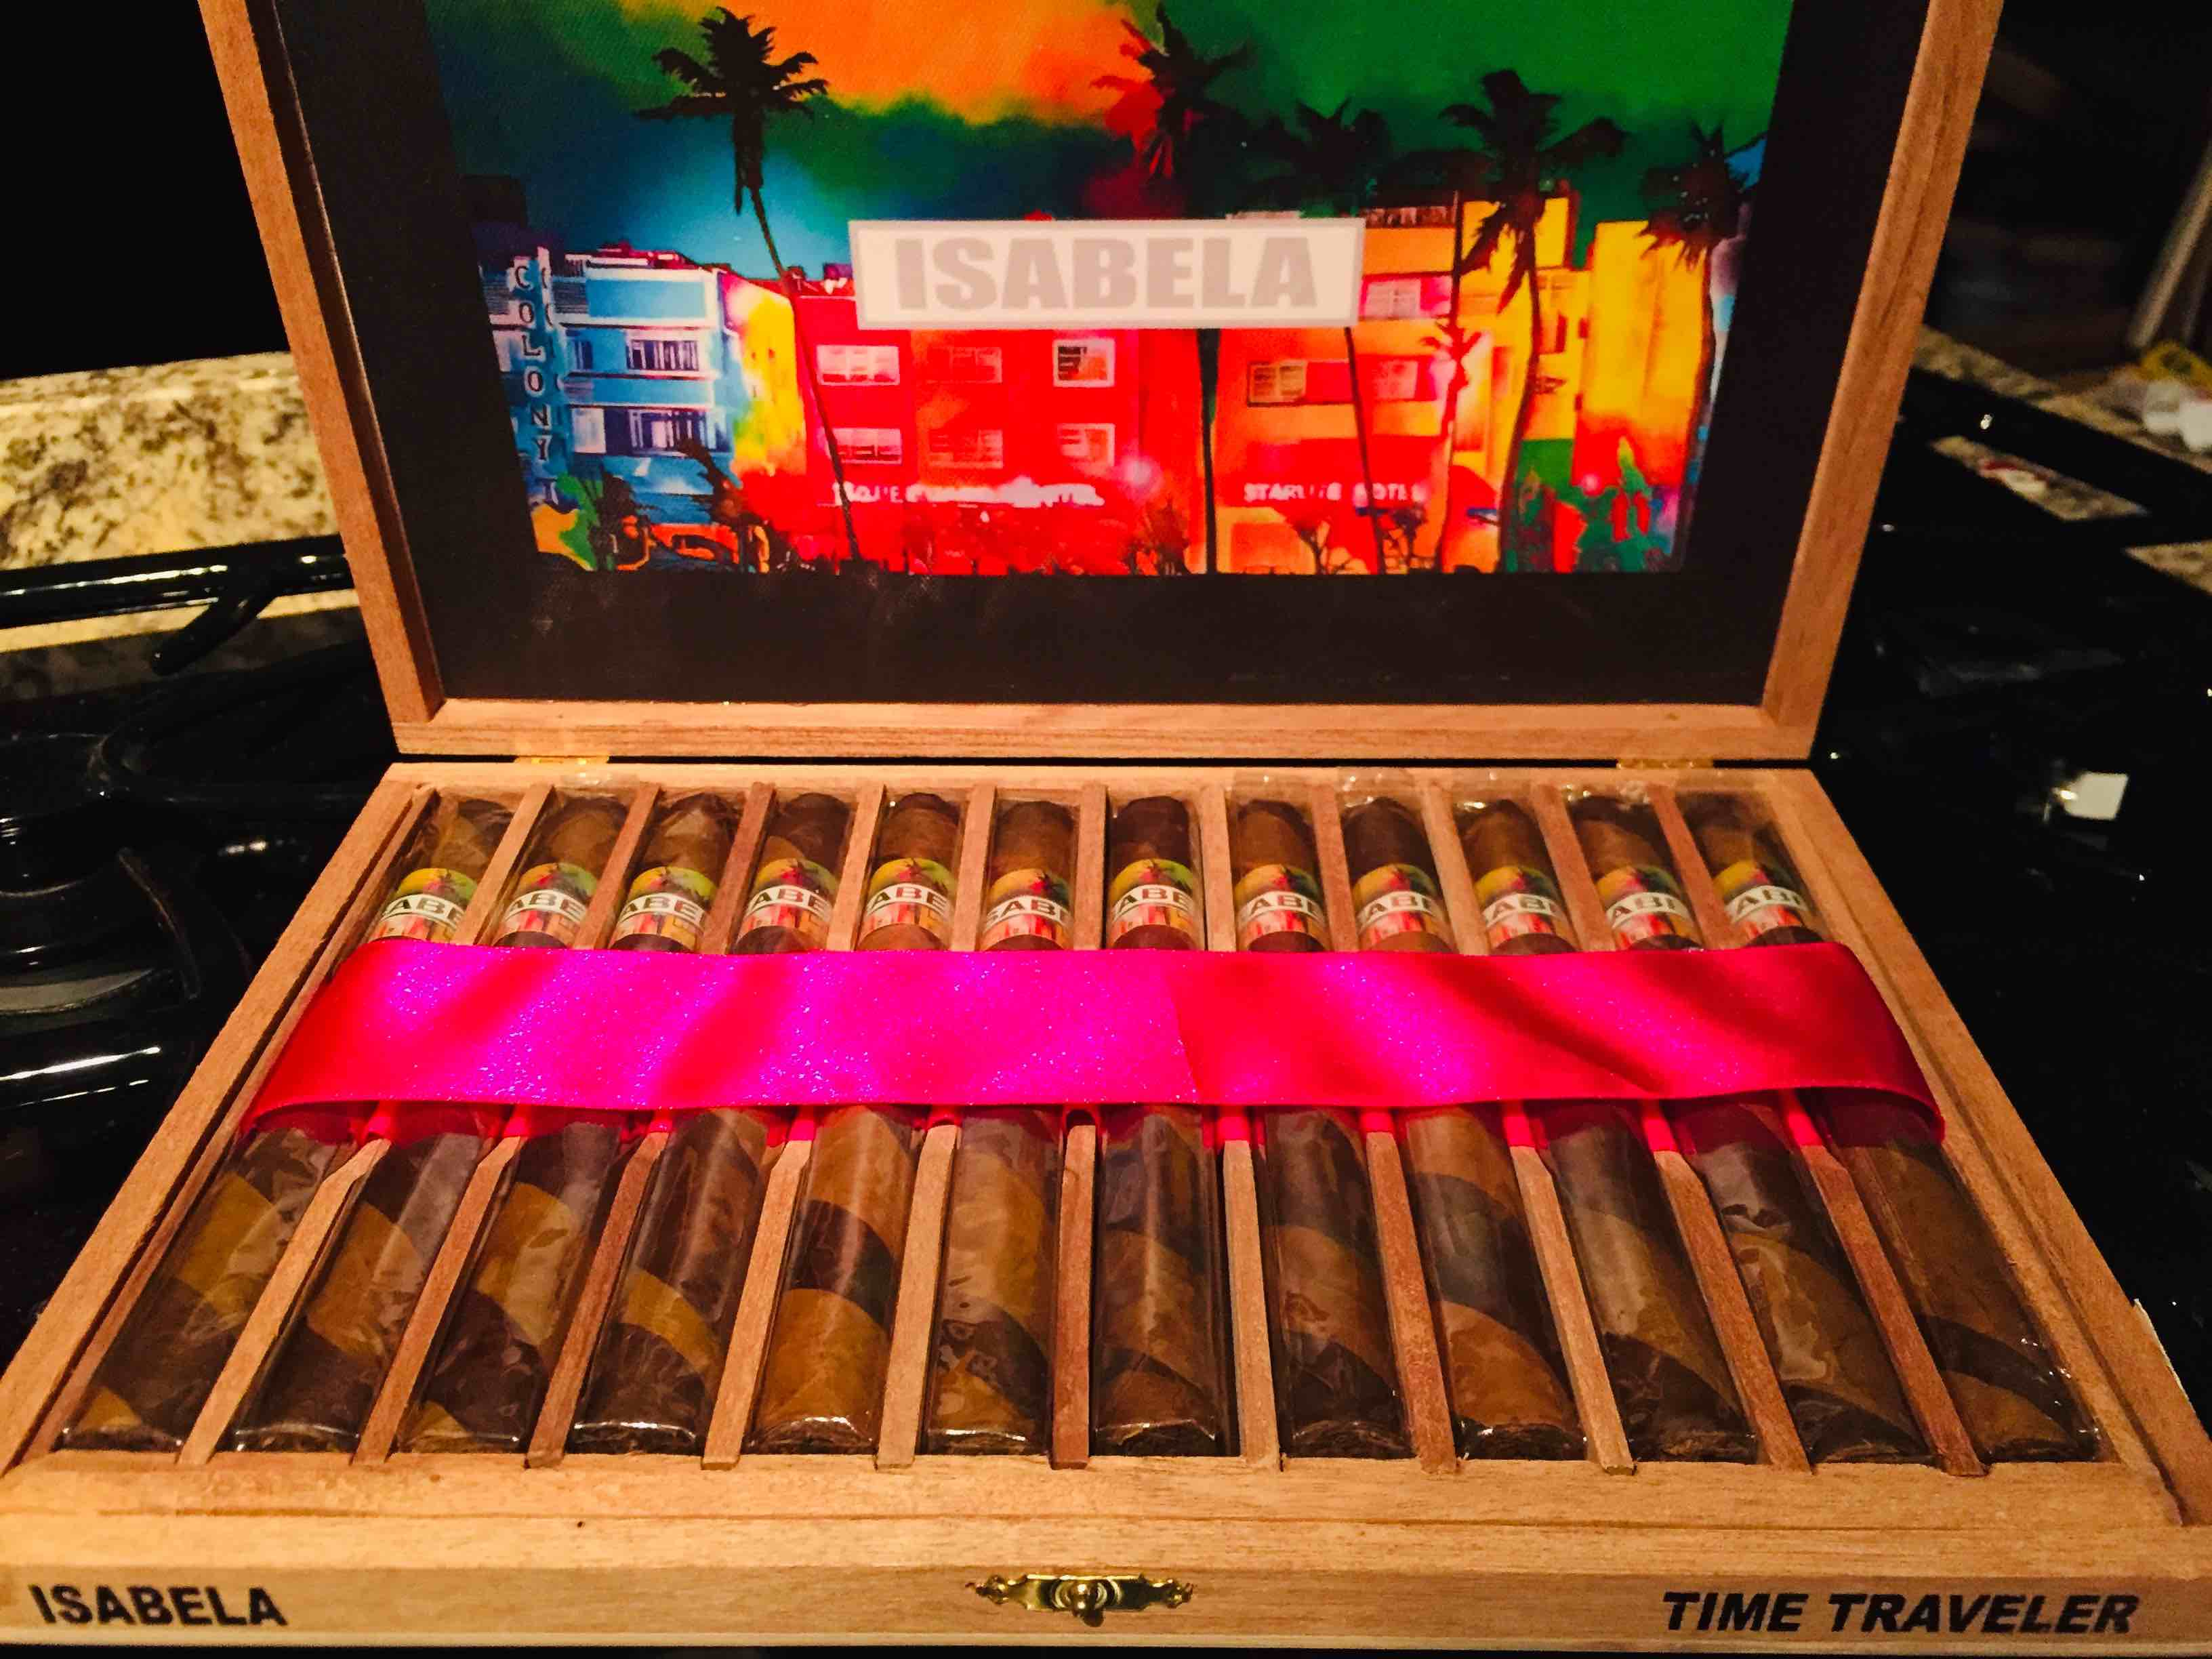 Cigar News: Isabela Cigar Company Releases Time-Traveler 2019